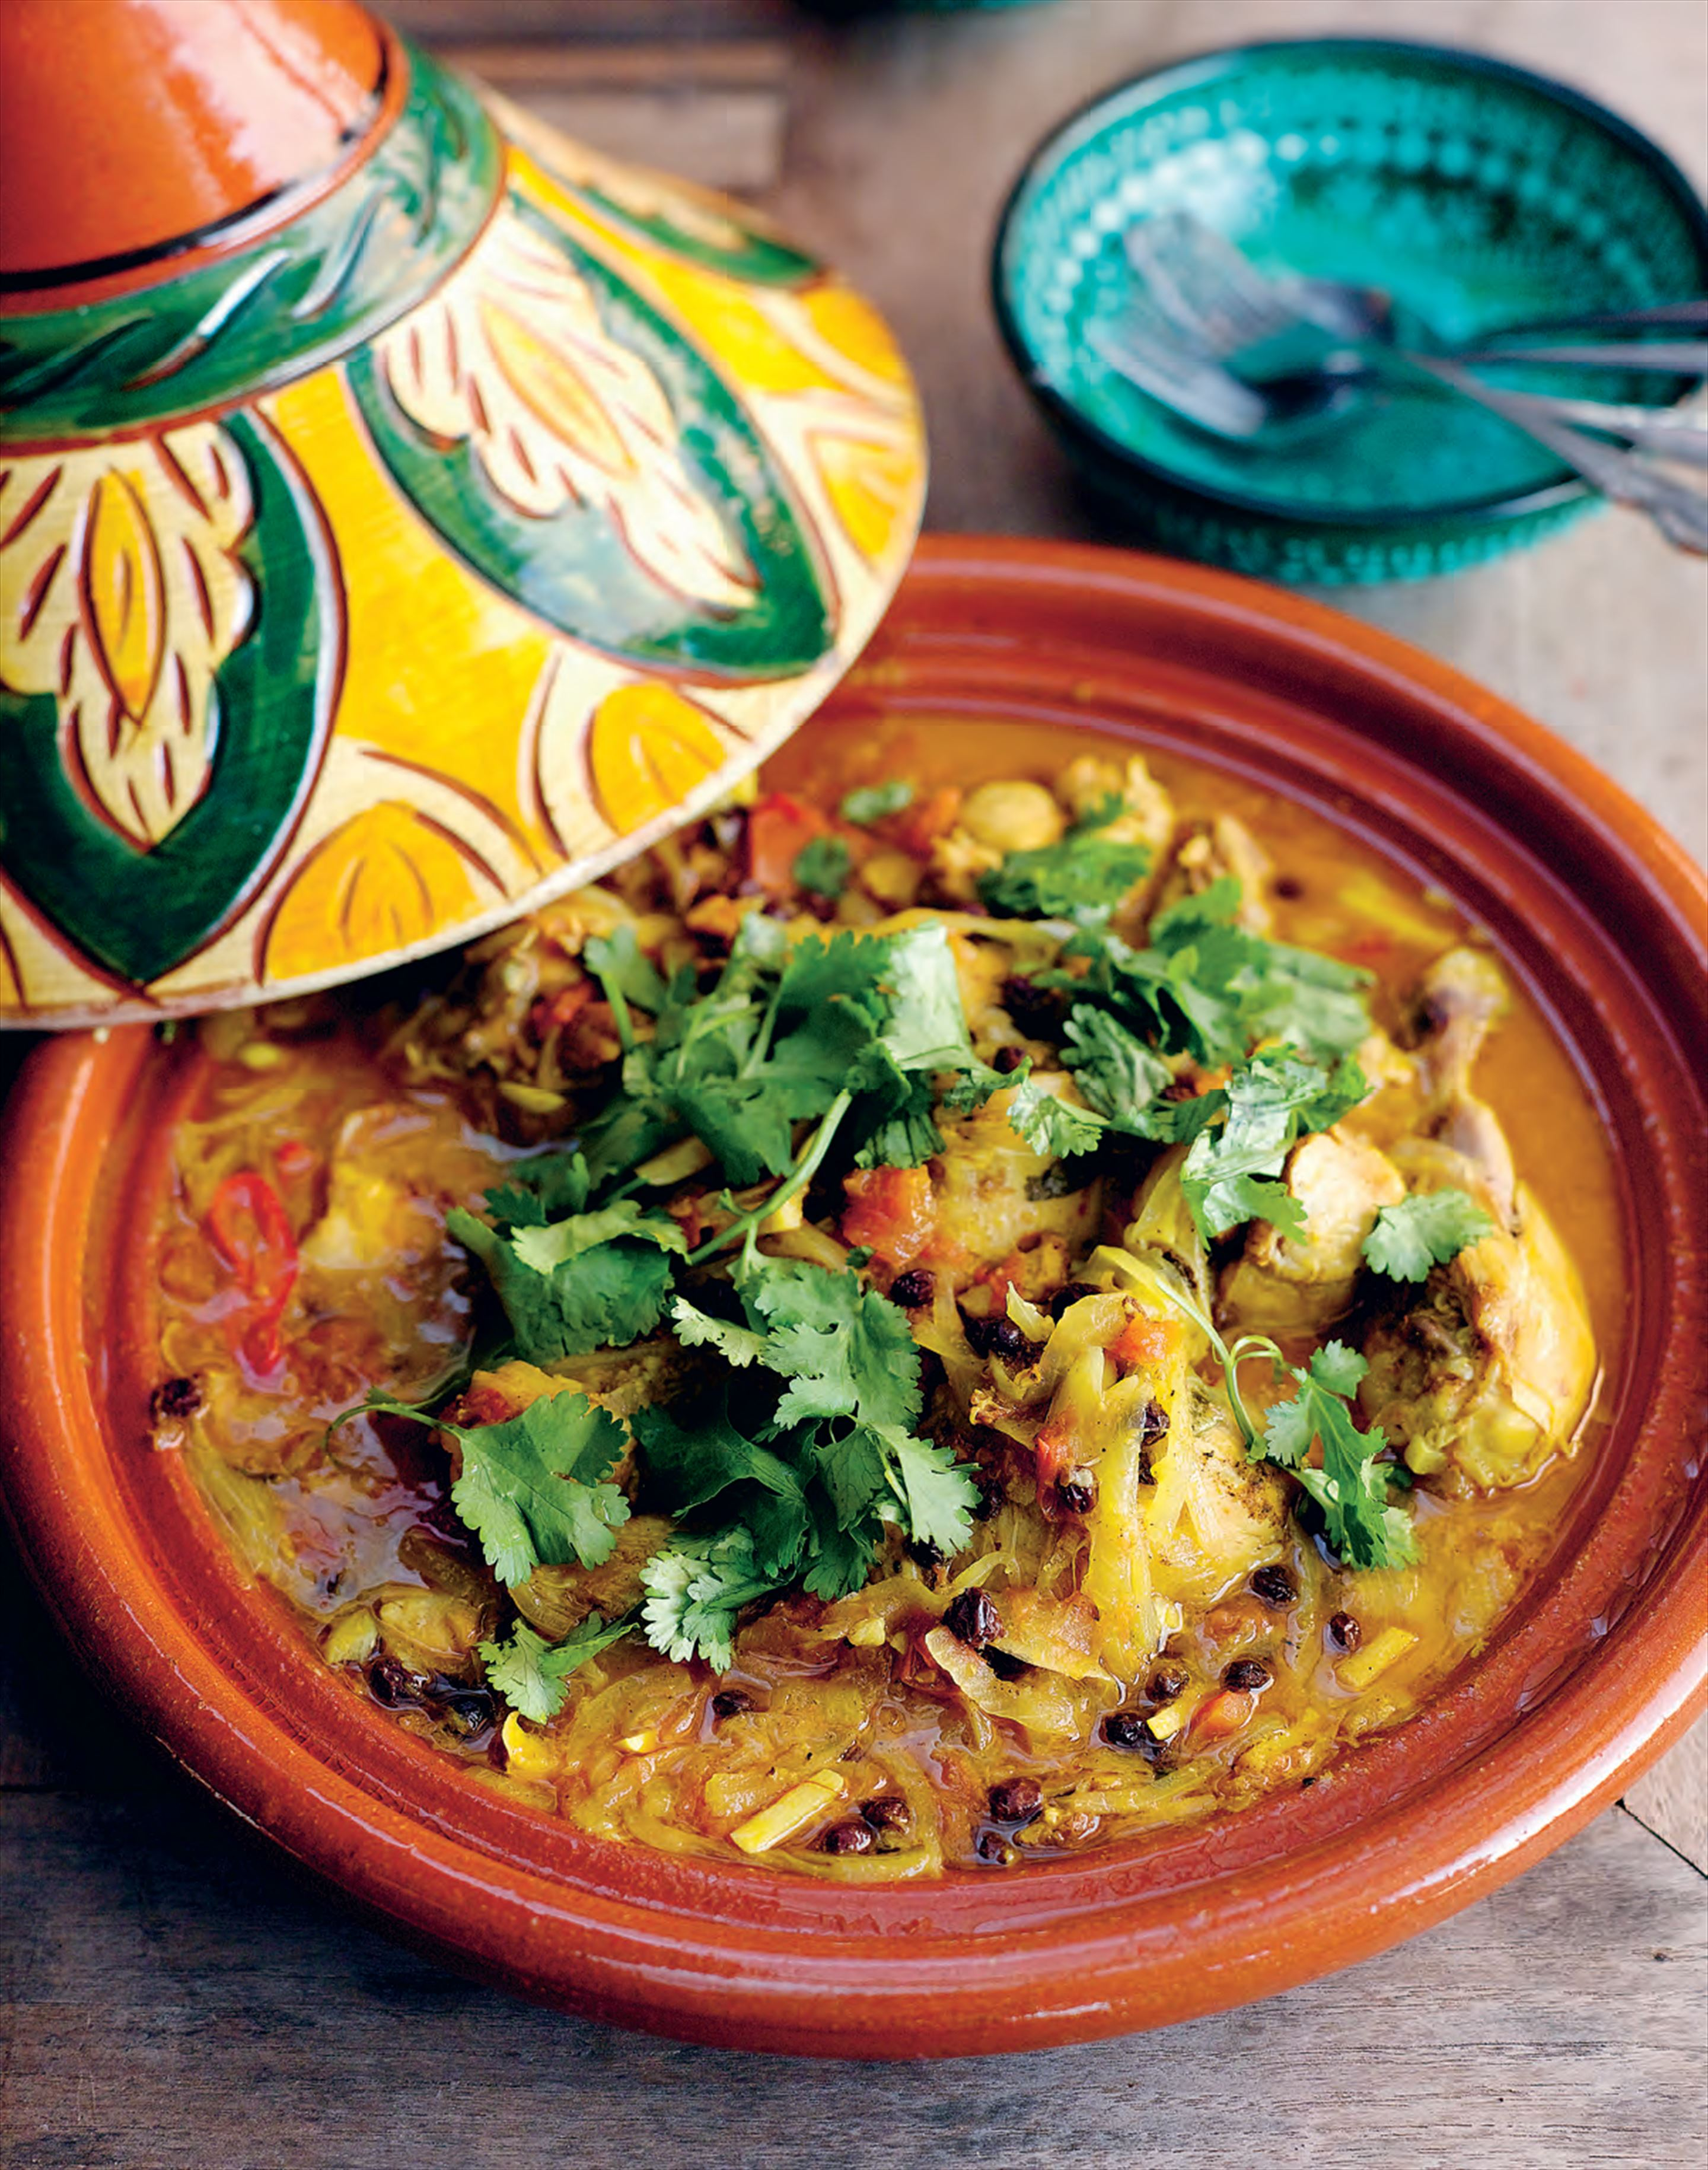 Chicken tagine with ginger and lemon